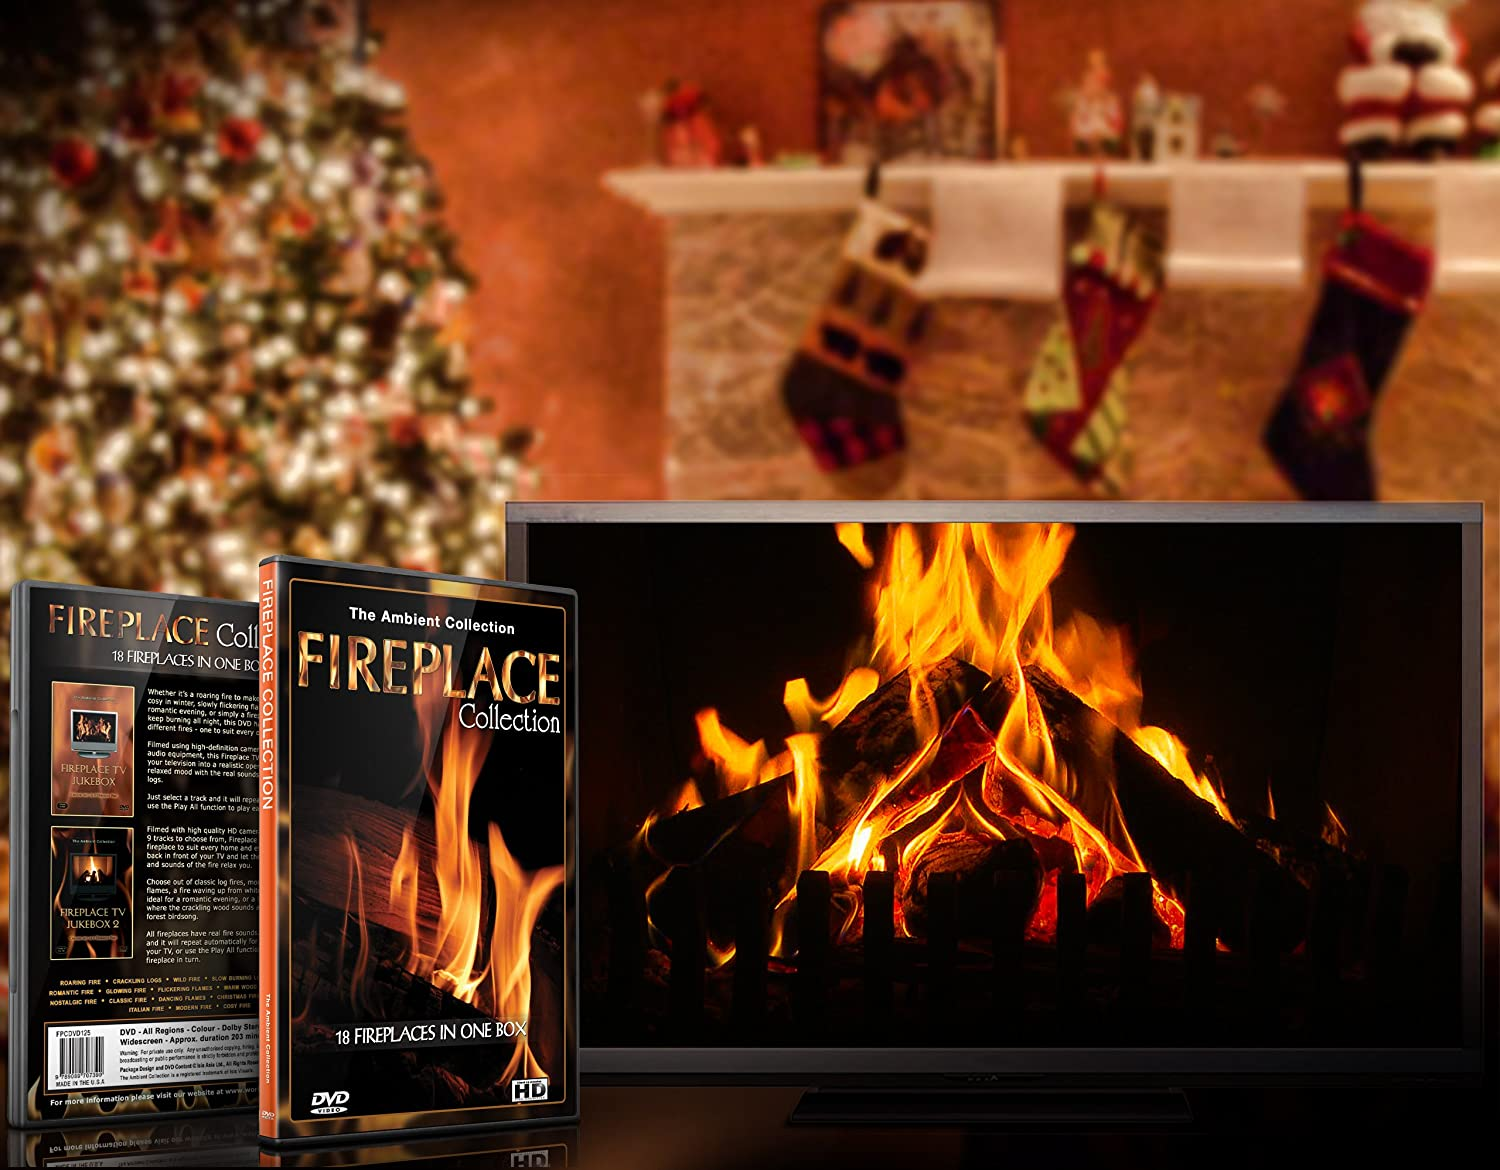 amazon com fire 2 dvd box set fireplace collection 2013 with a